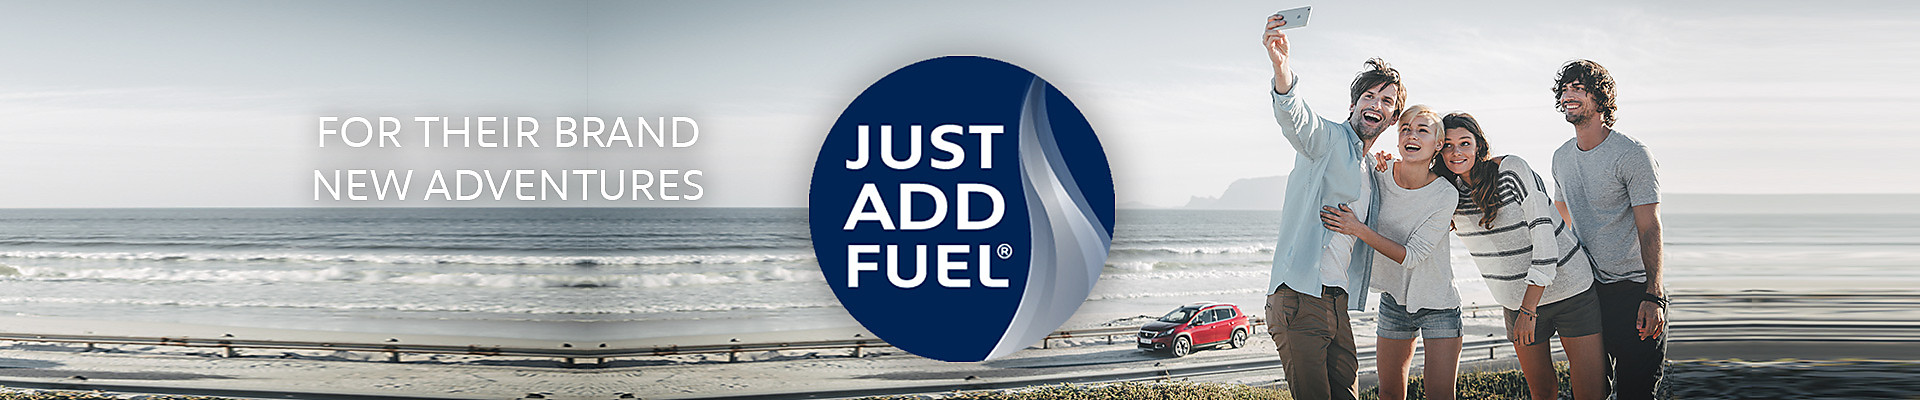 Peugeot Just Add Fuel Their First Car